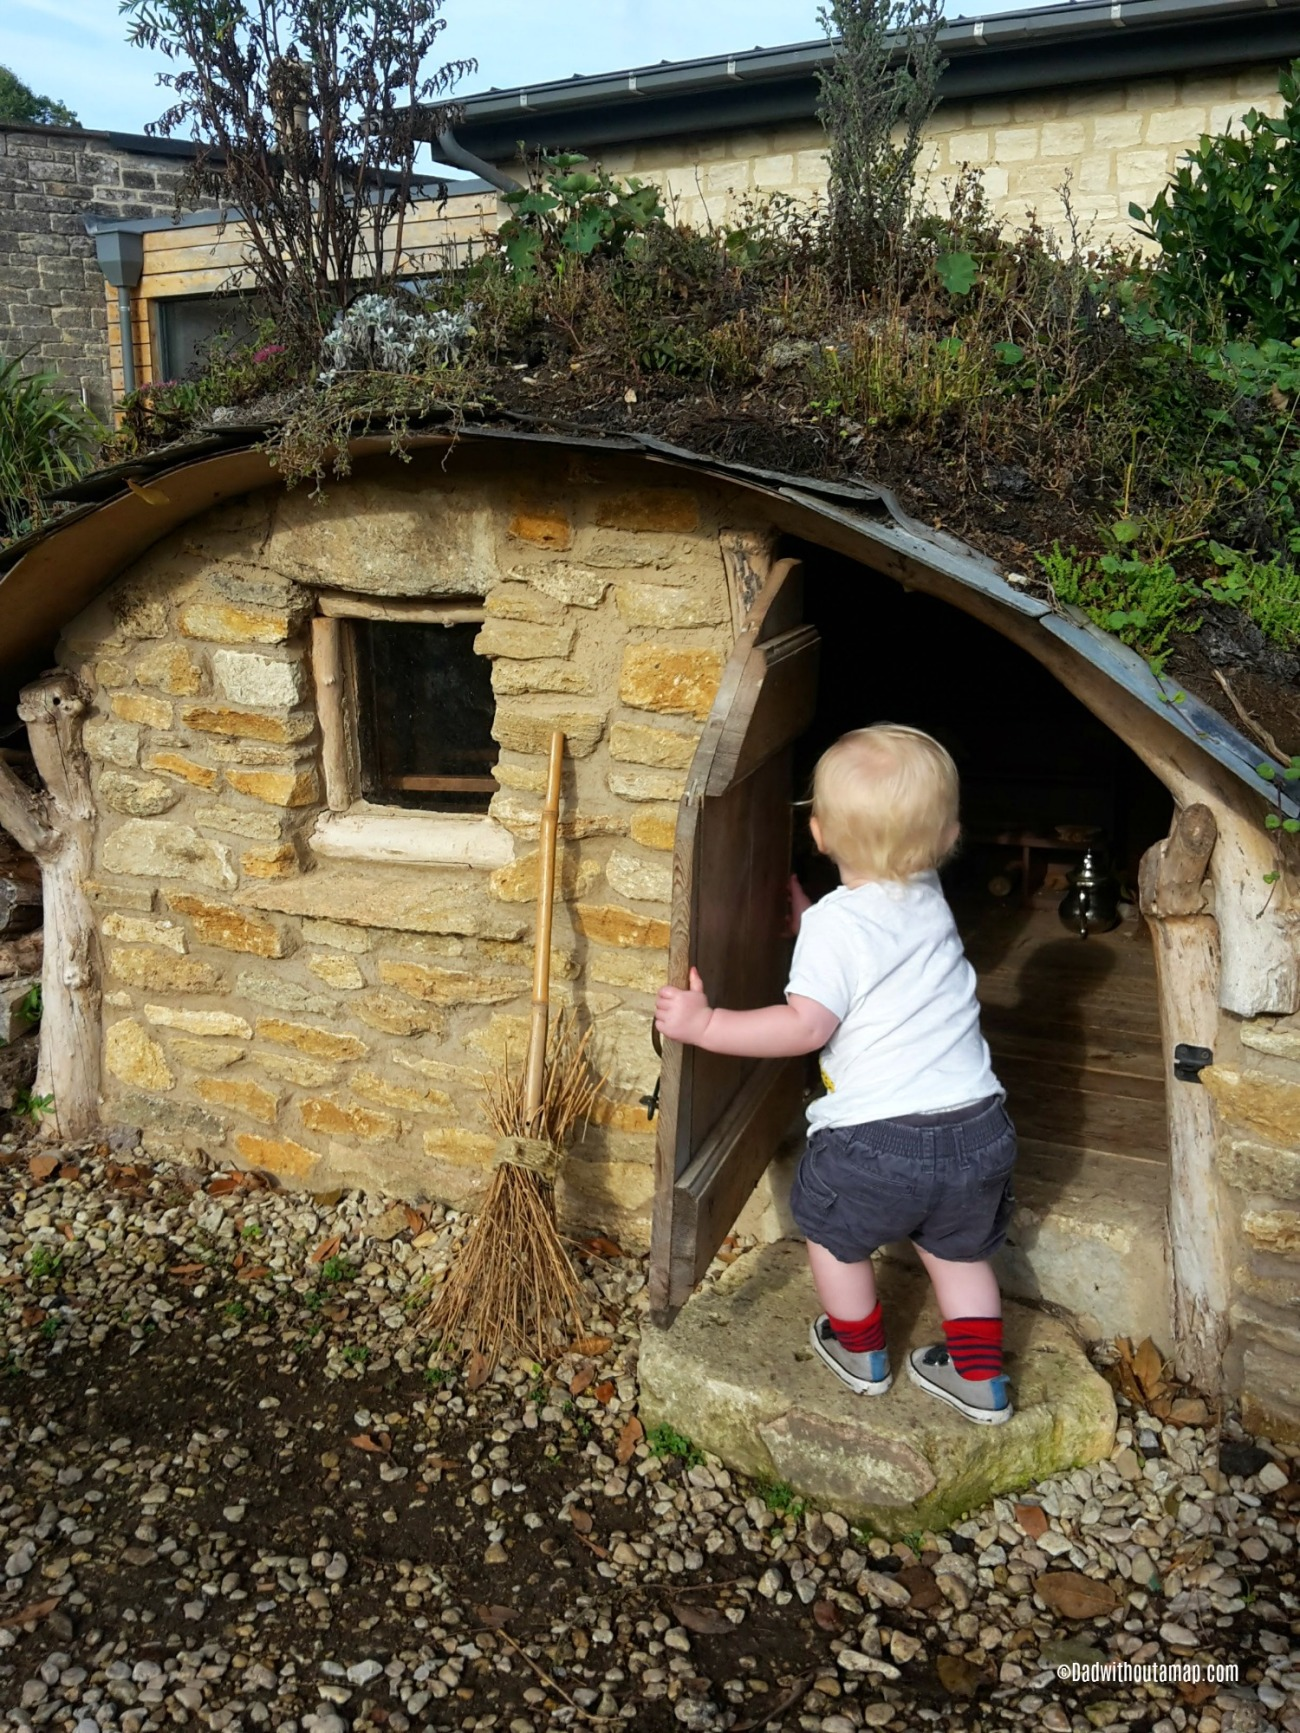 Frankie and the hobbit house 2.jpg